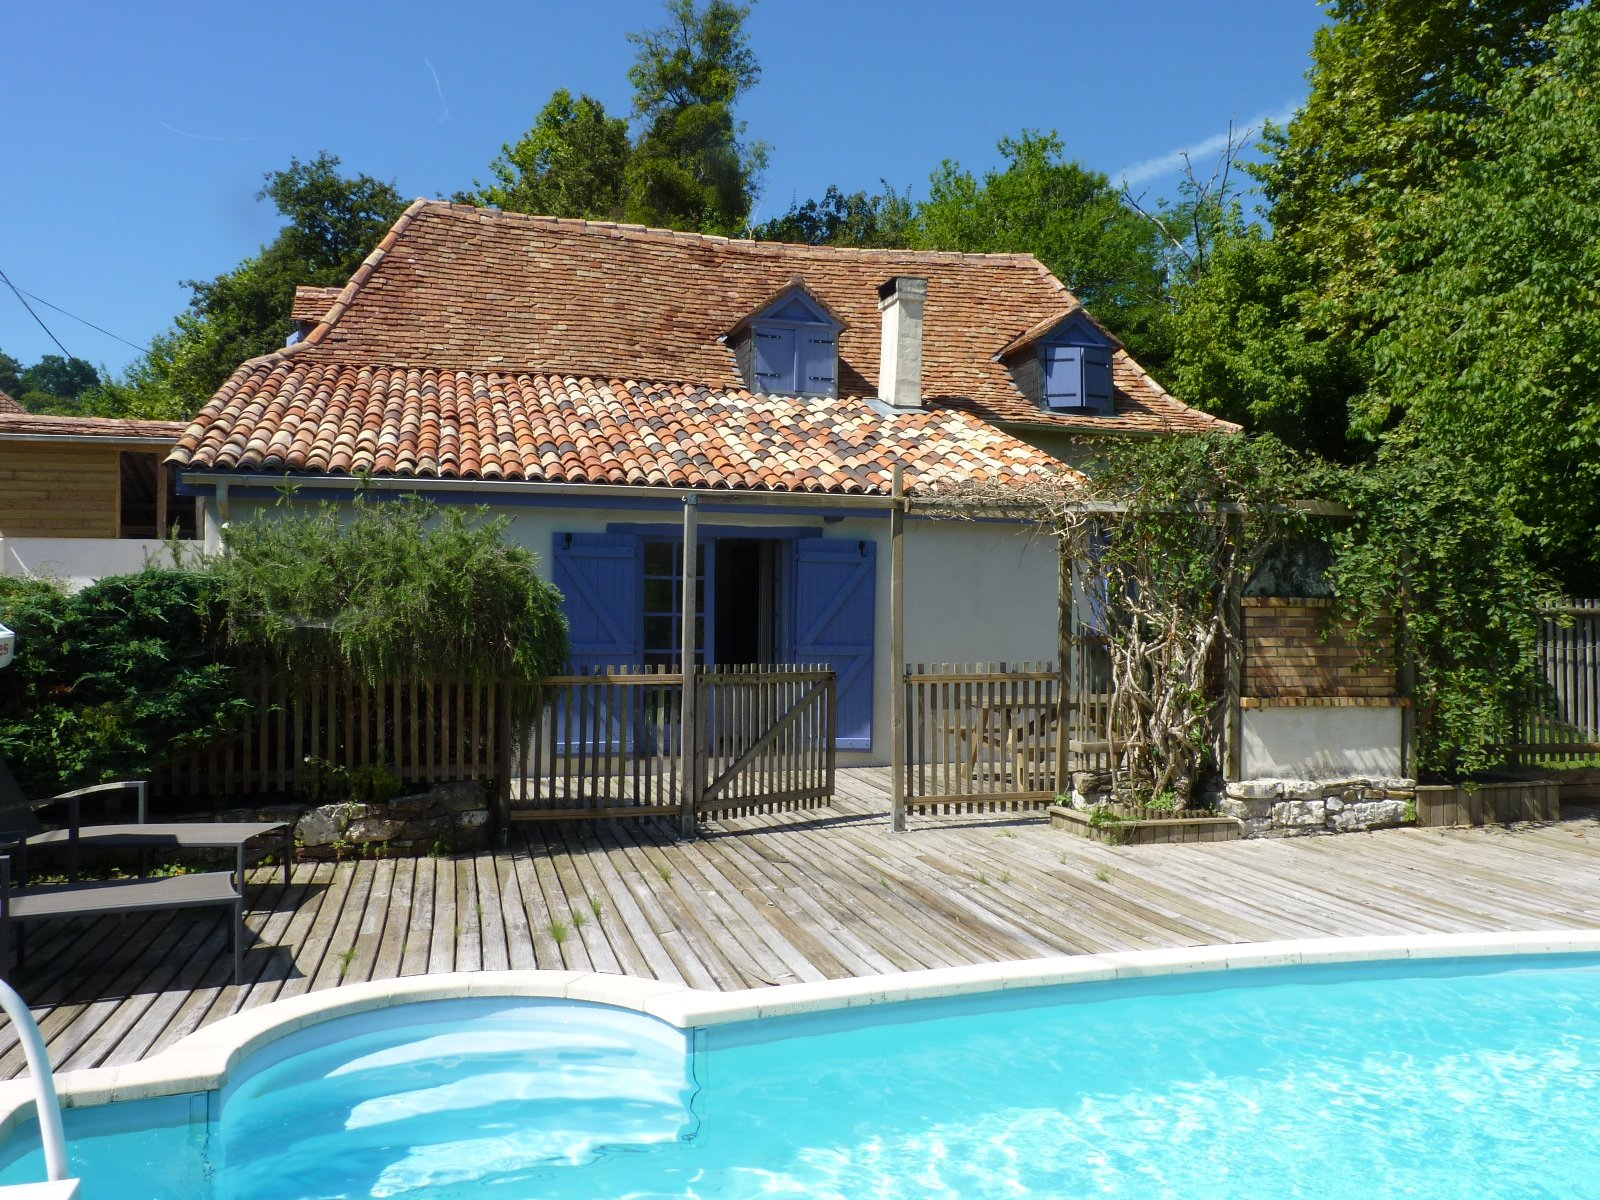 SALIES DE BEARN - Pretty Béarnaise house with pool, close to town.